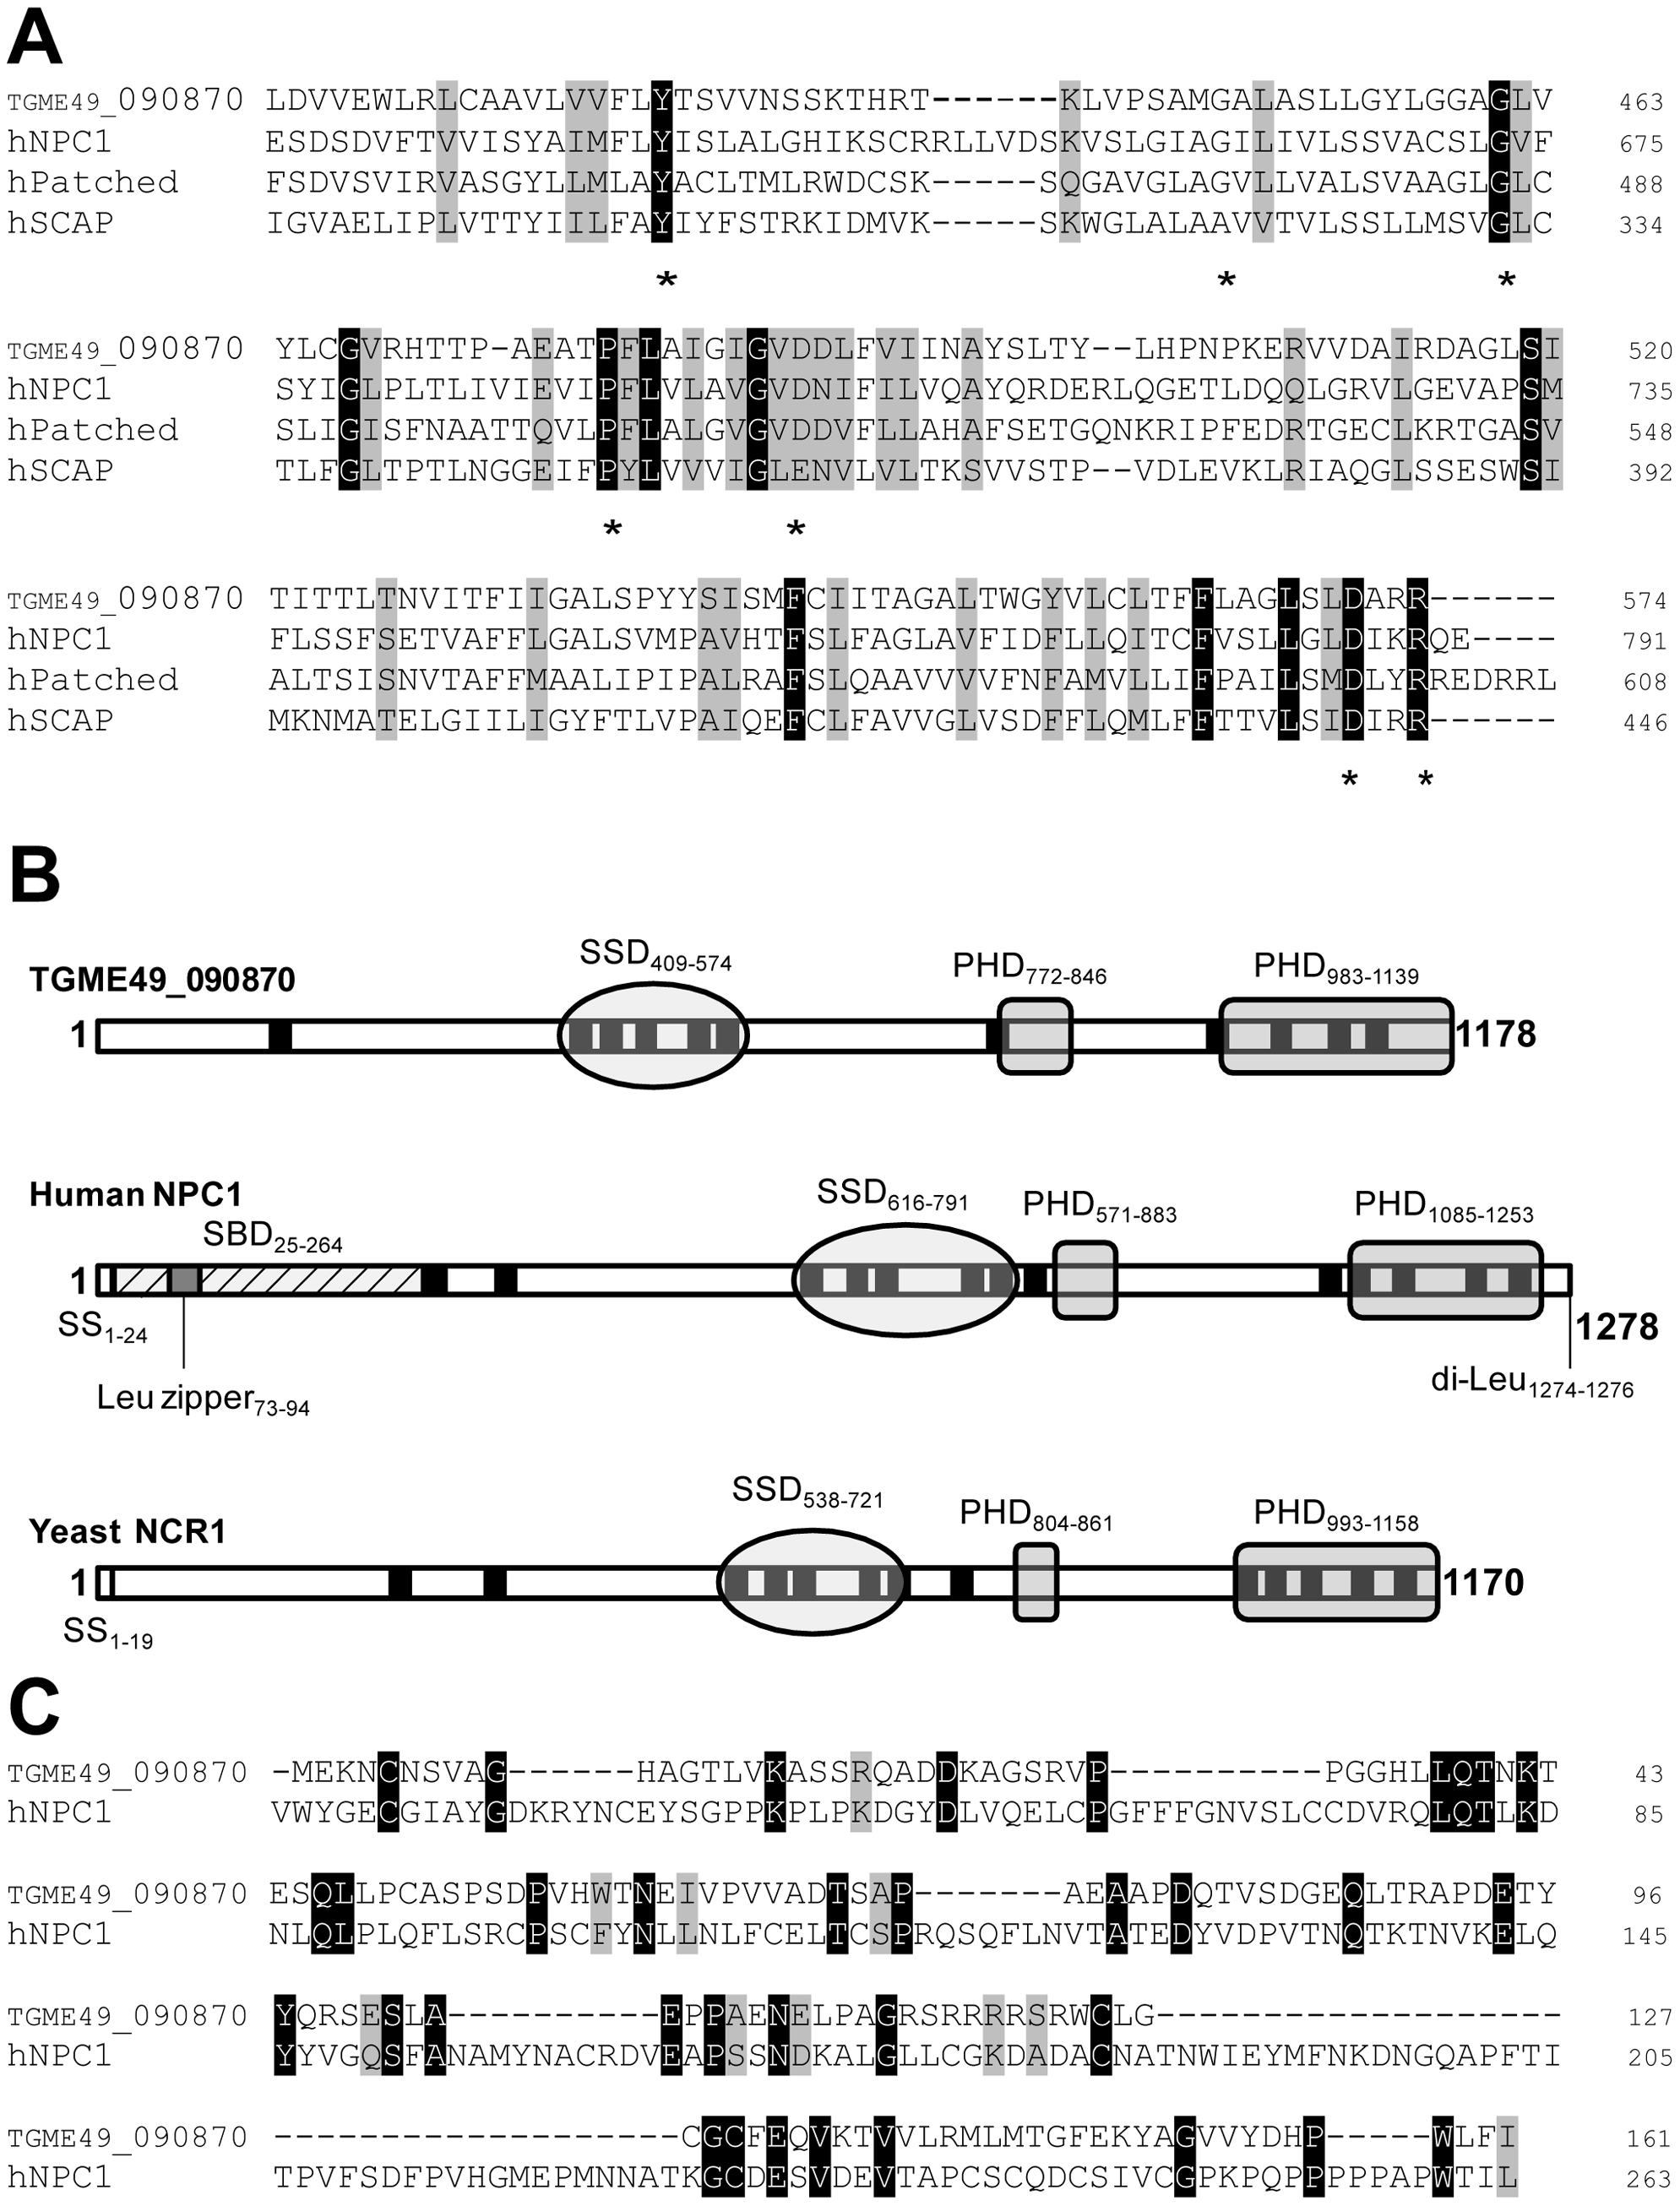 Characteristic features of the predicted sequence of TGME49_090870 displaying a sterol-sensing-like domain and some conserved critical motifs of the NPC1 family.